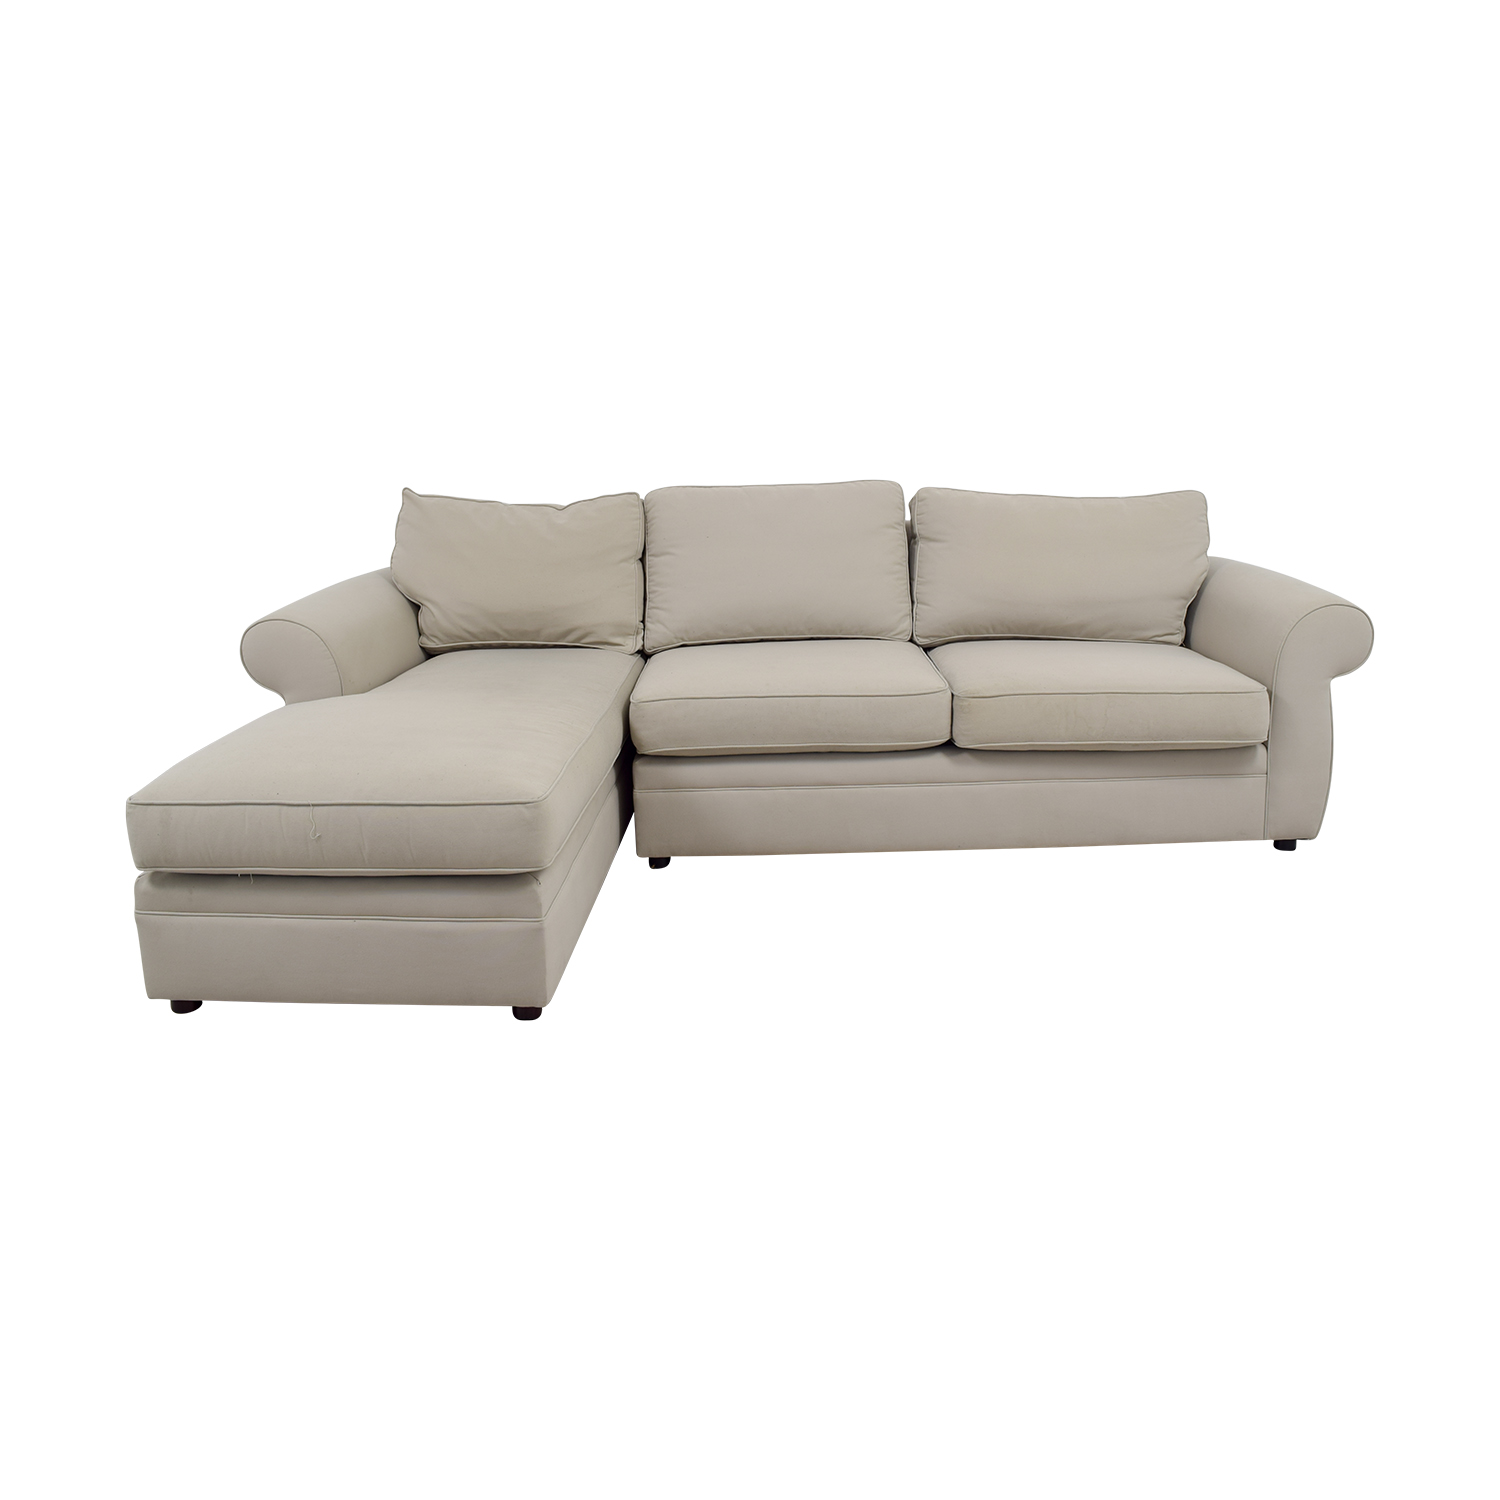 emfurn loveseats under tov linen free loveseat collections shipping abe wing